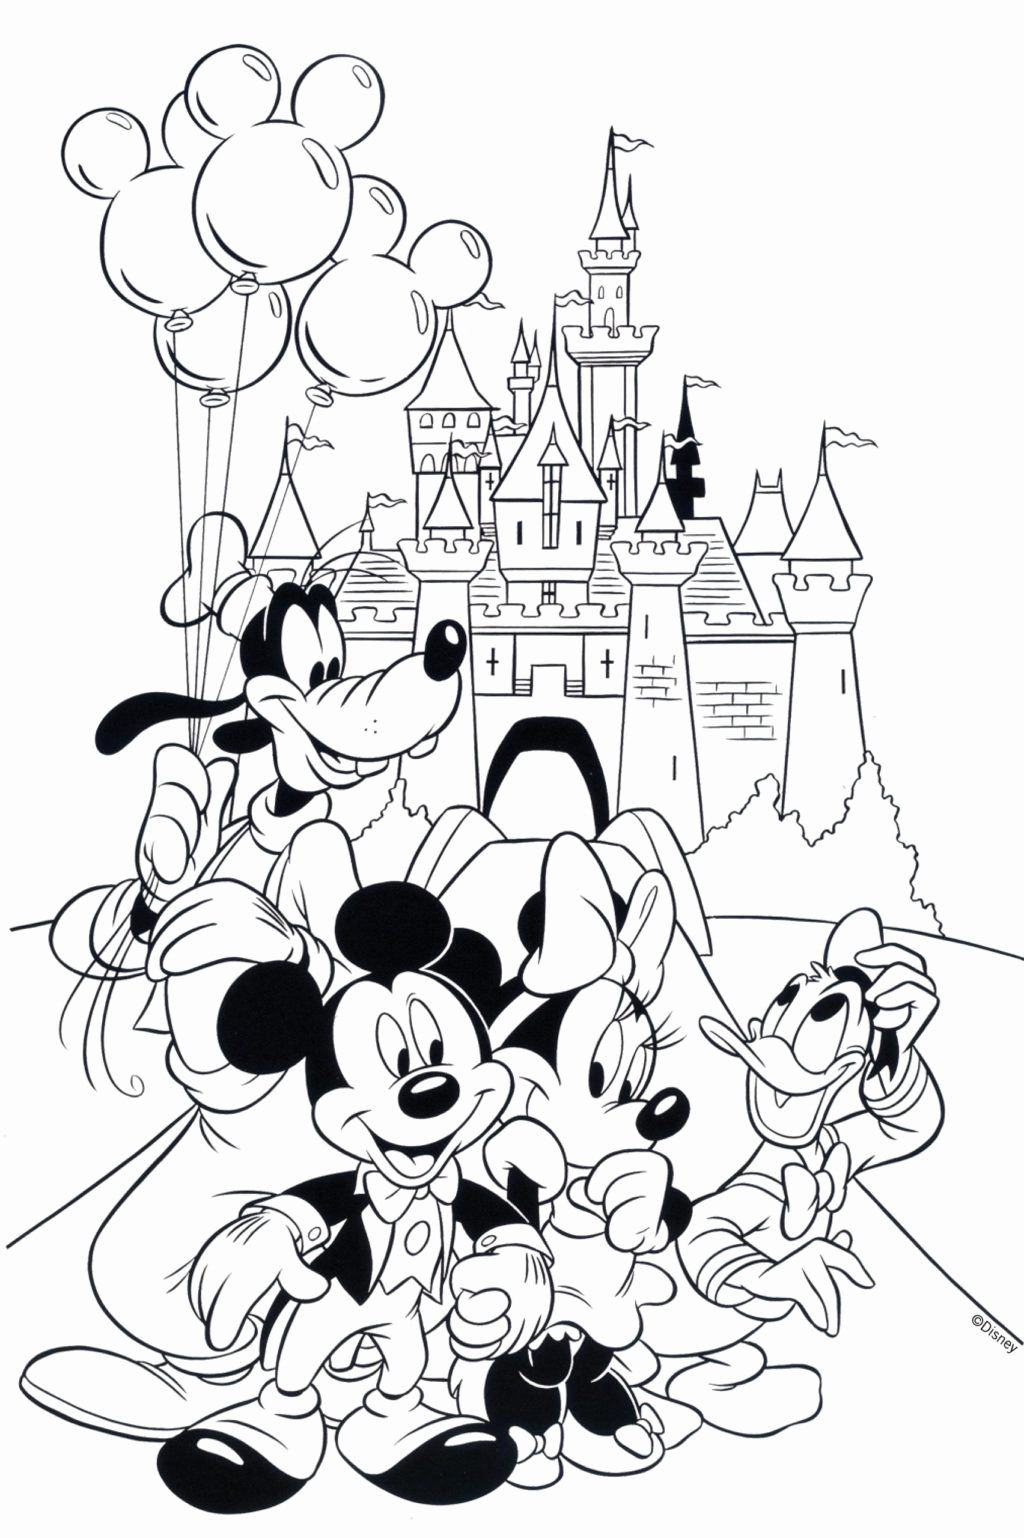 Free Online Coloring Pages Adults Lovely Coloring Remarkable Disney Villainsng Book Lin In 2020 Disney Coloring Pages Mickey Mouse Coloring Pages Mickey Coloring Pages